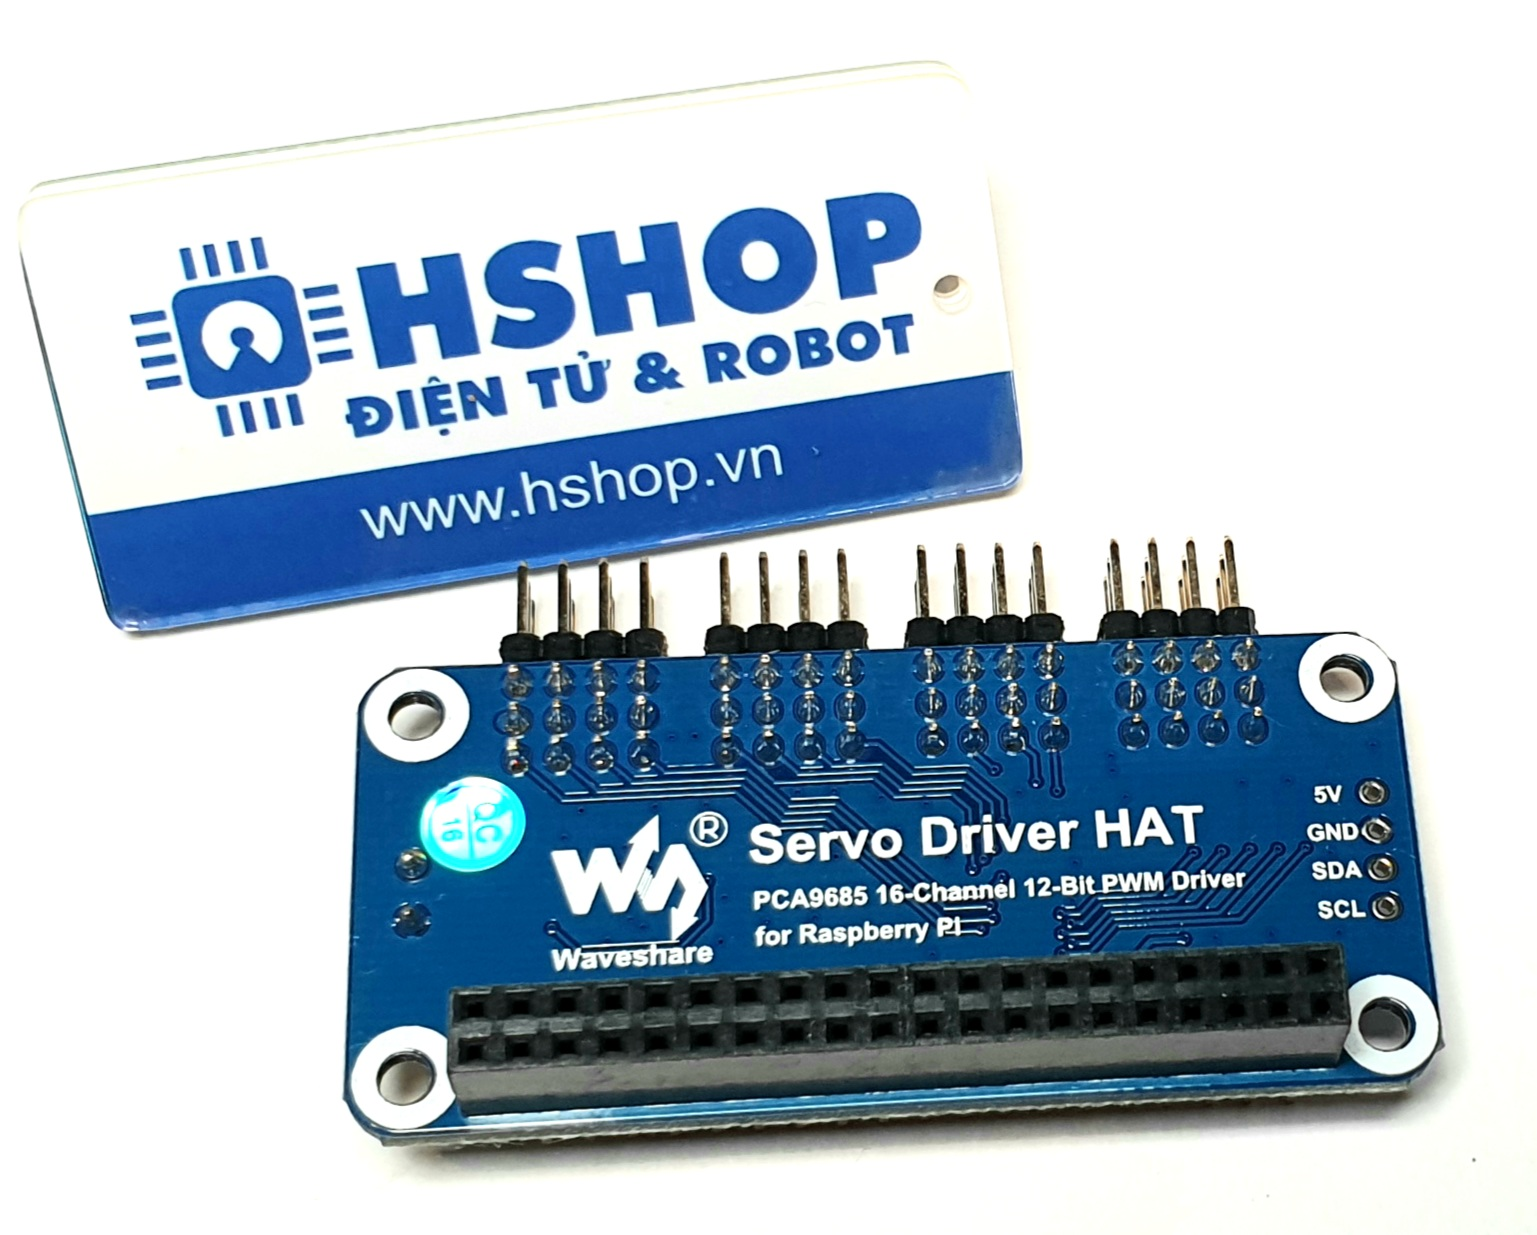 Mạch Waveshare Servo Driver HAT (B) for Raspberry Pi